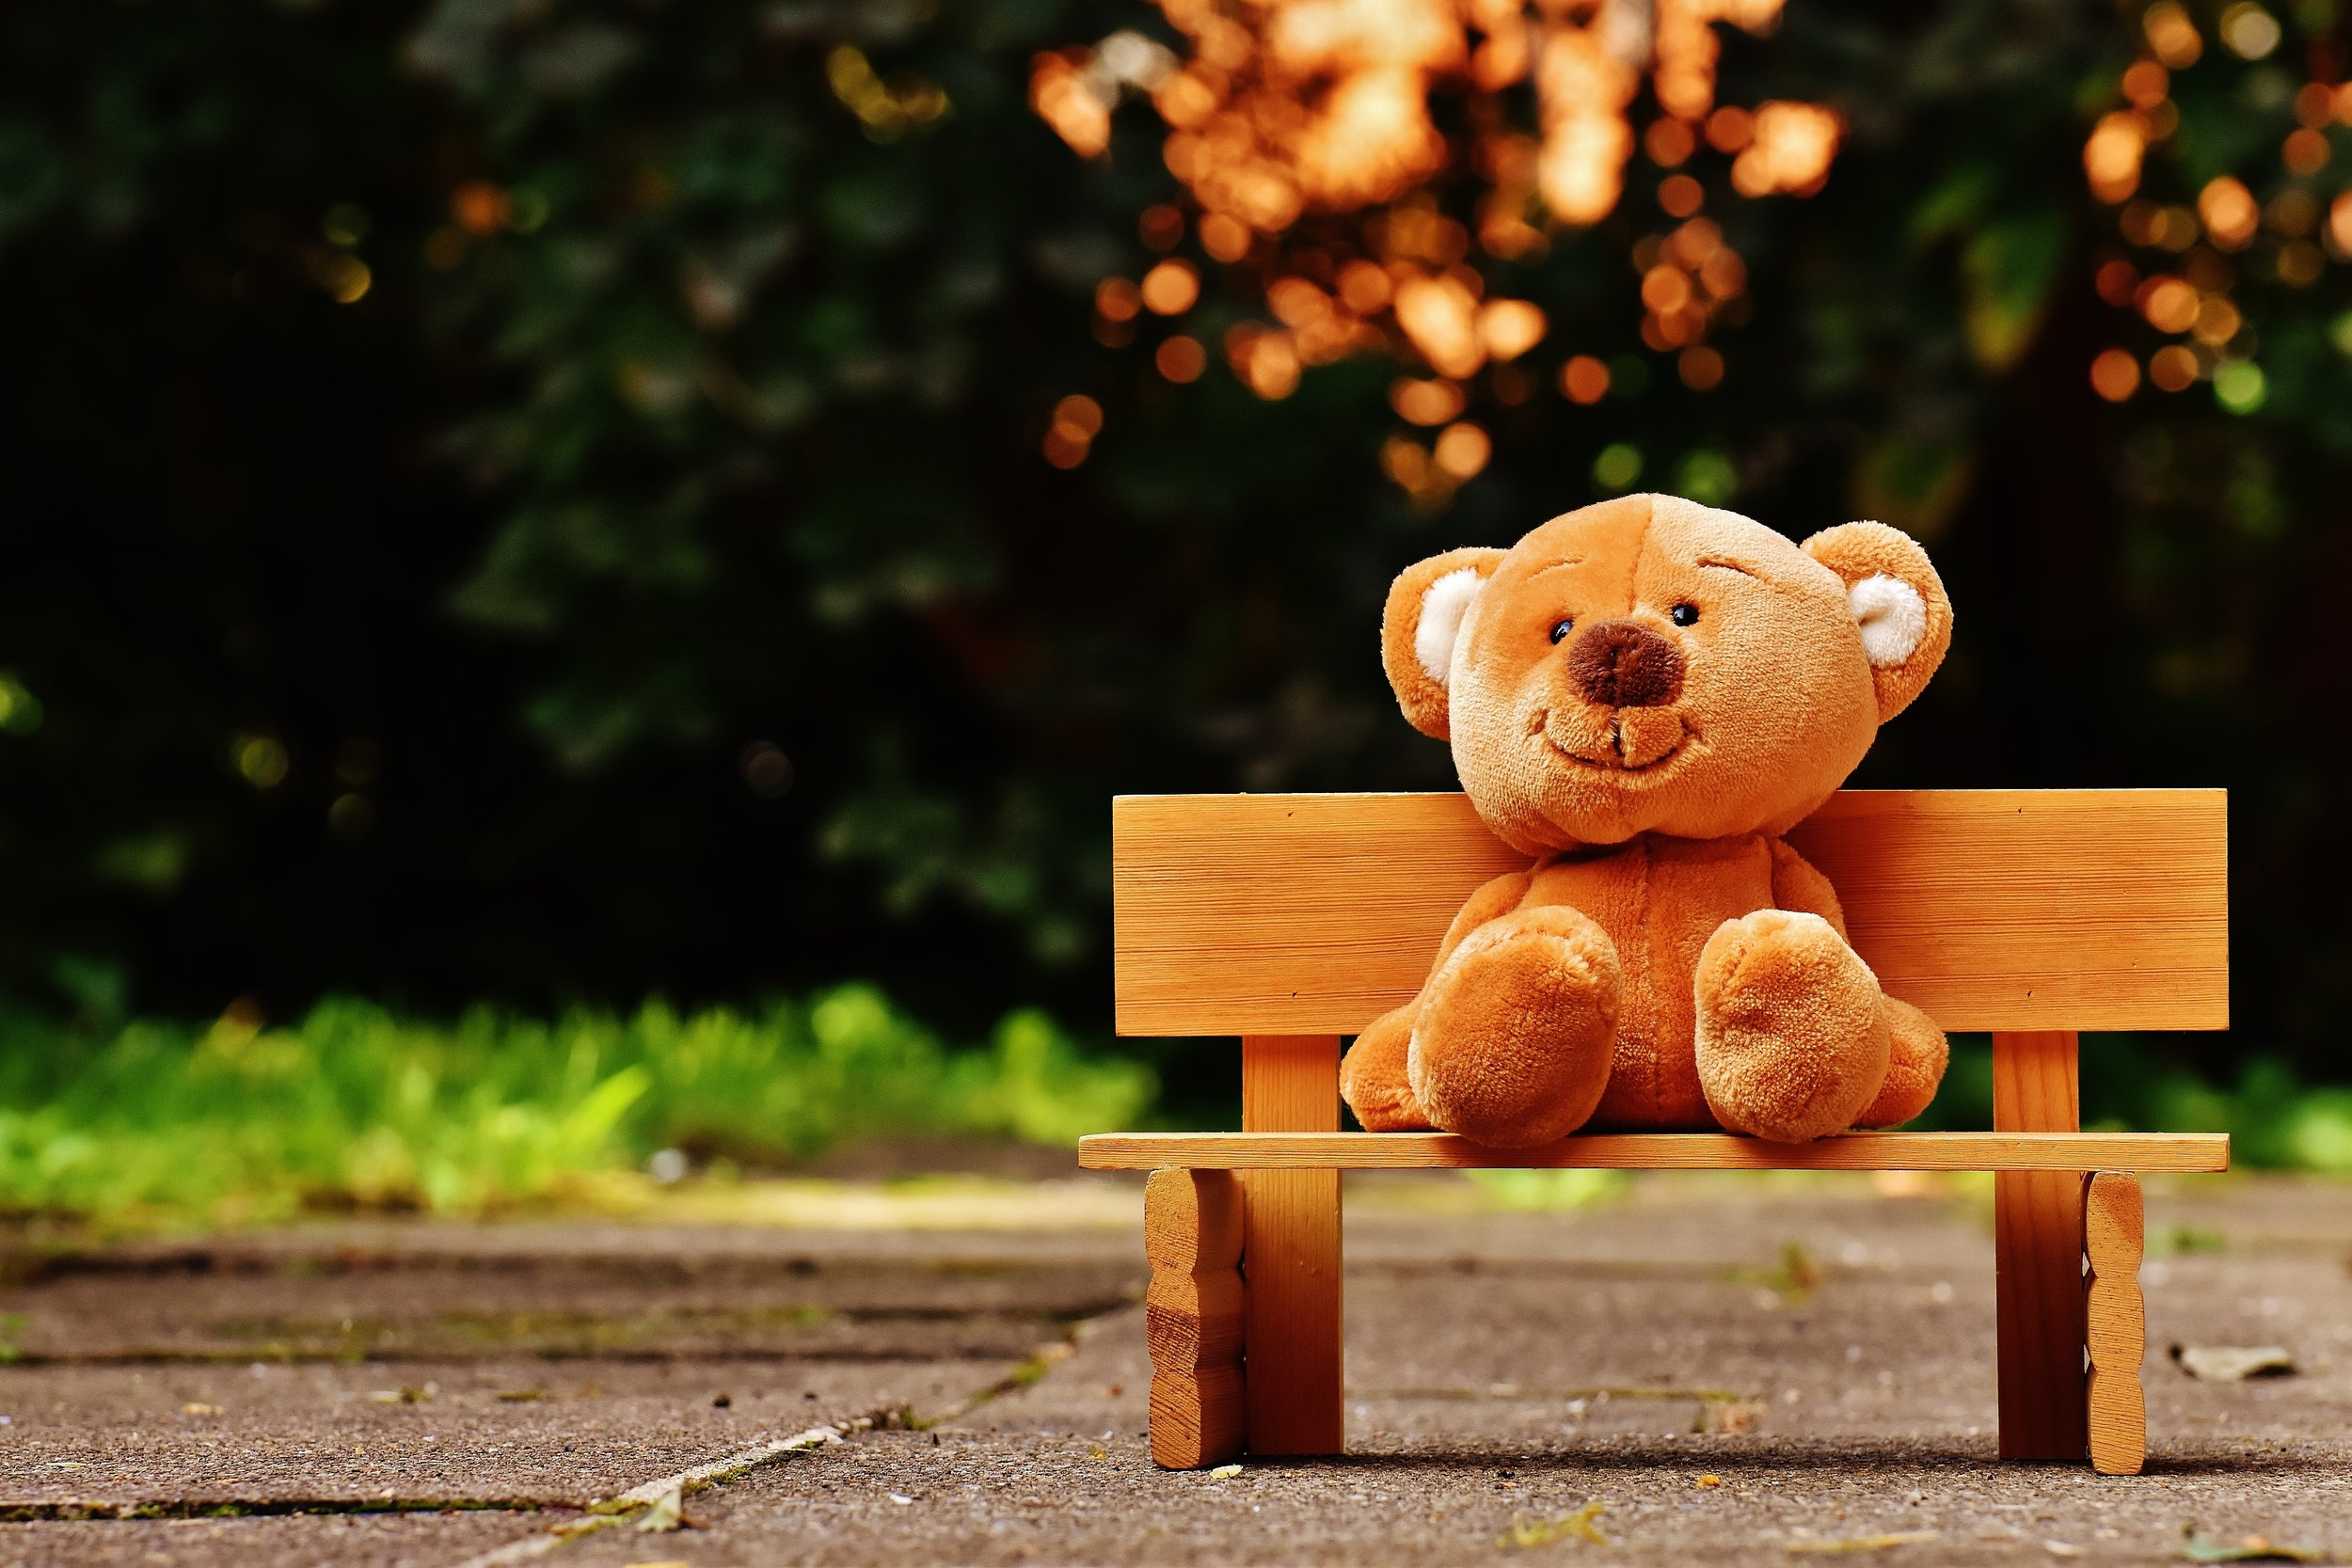 bear-bench-child-207891.jpg